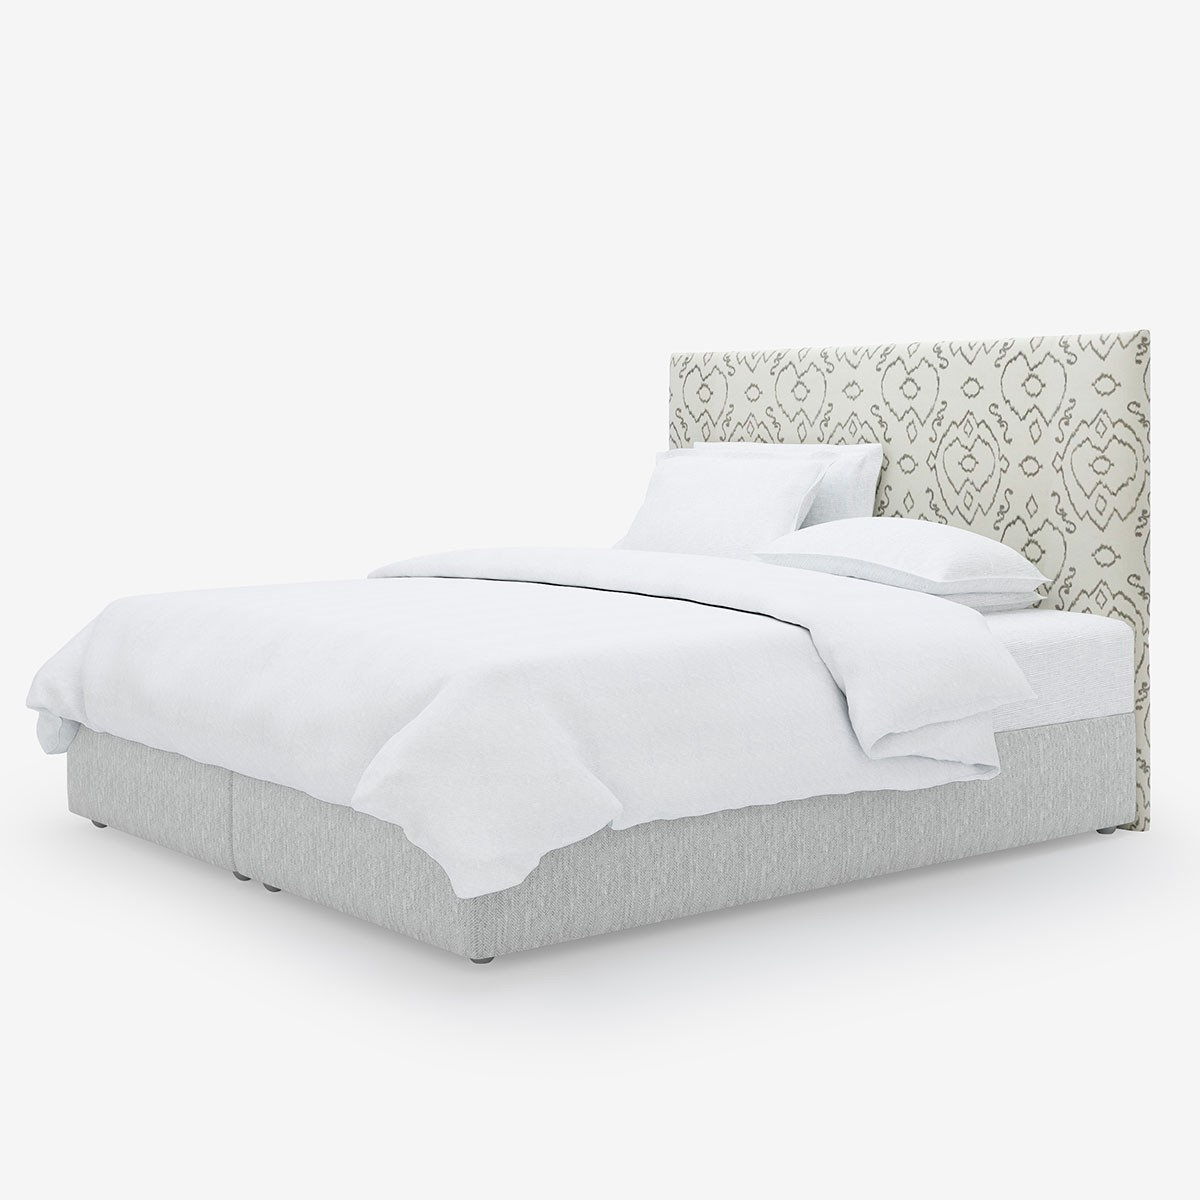 Image shows Simply Patterned Super King Headboard in Ikat Pattern